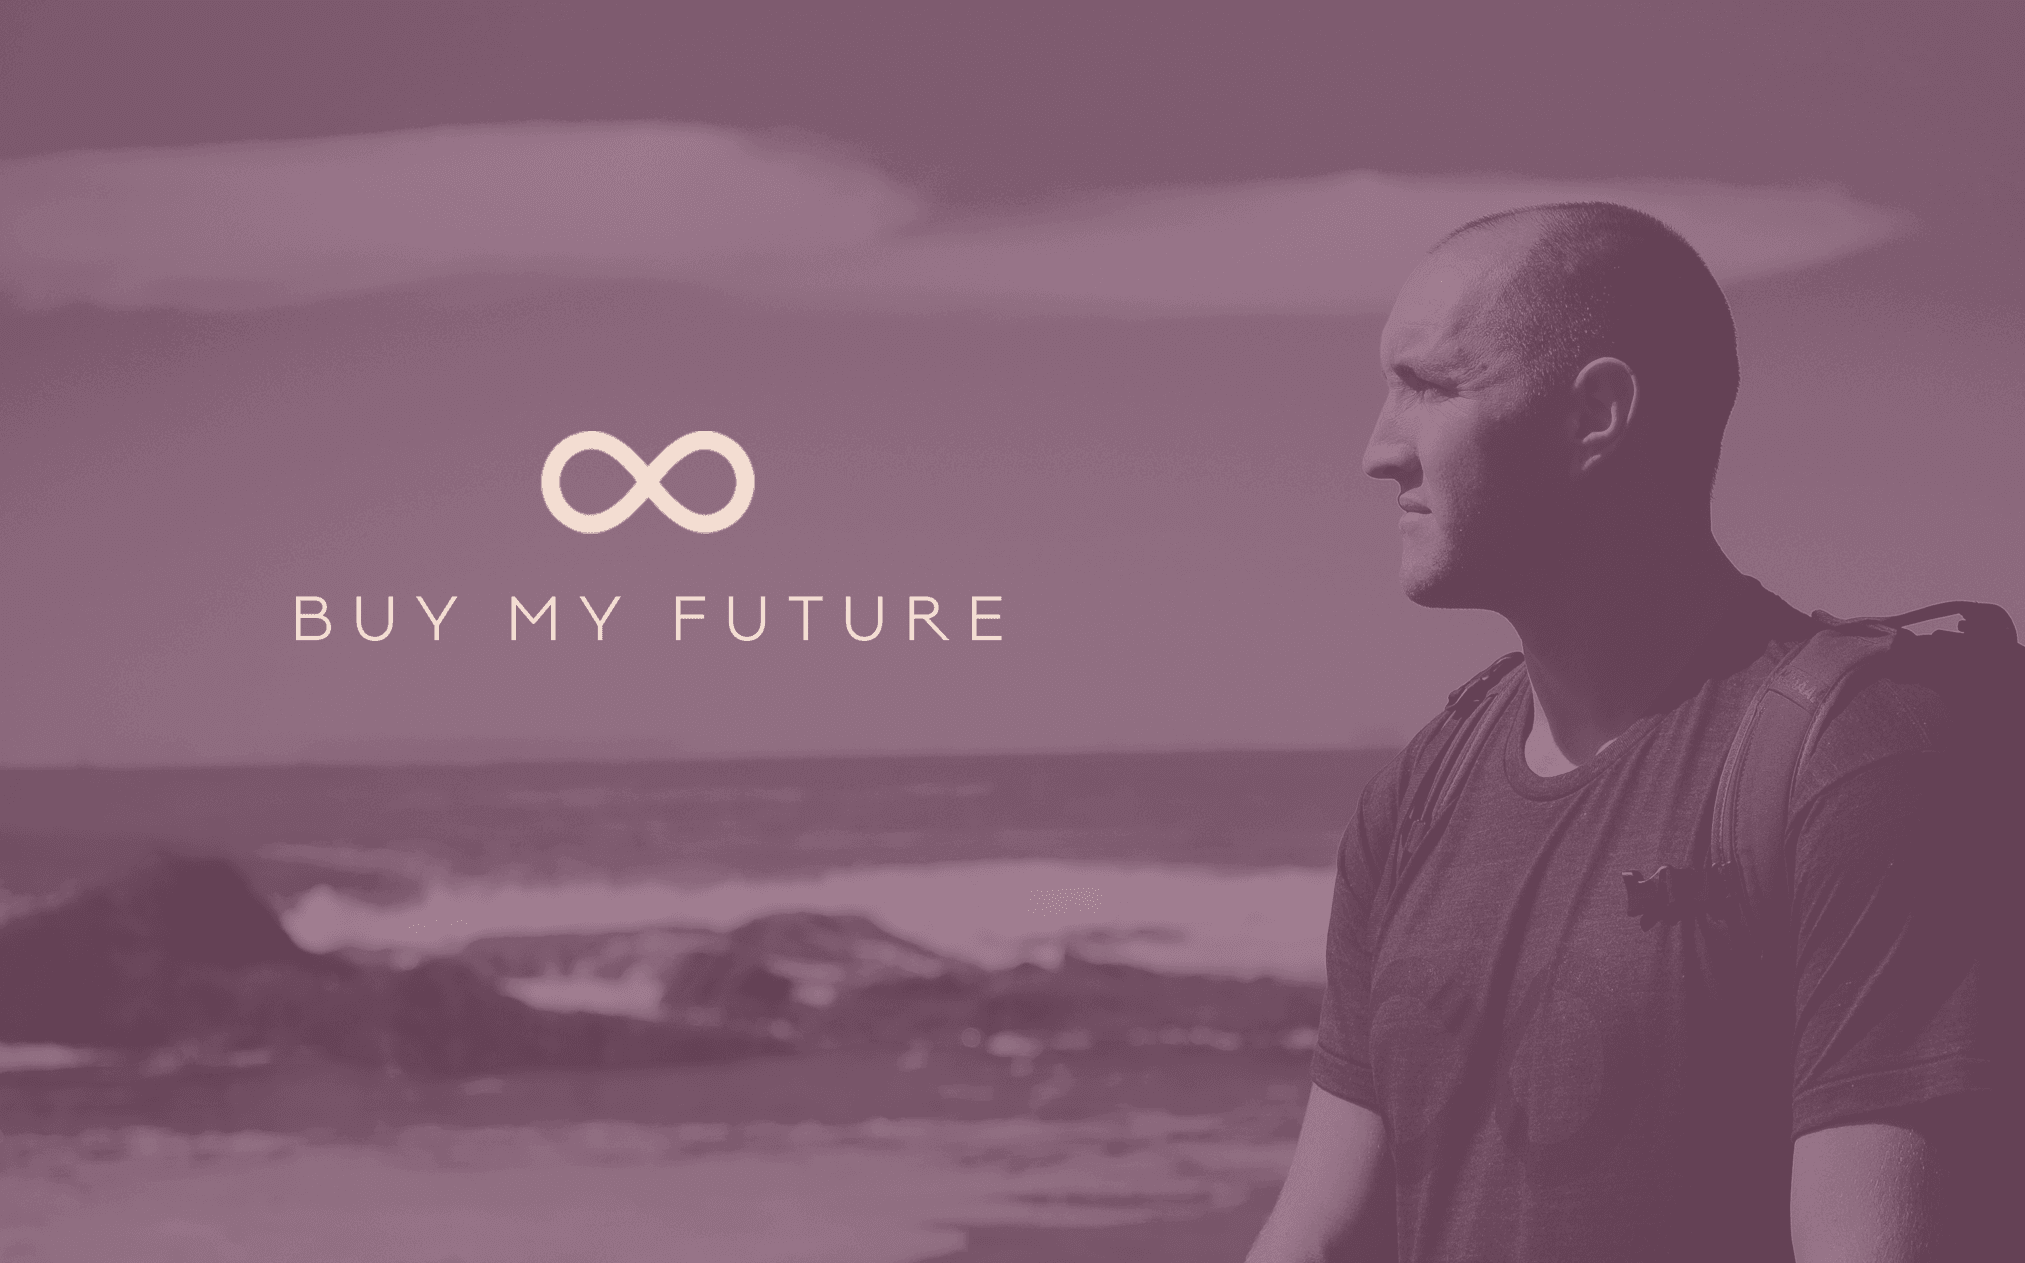 BuyMyFuture, a project by Jason Zook